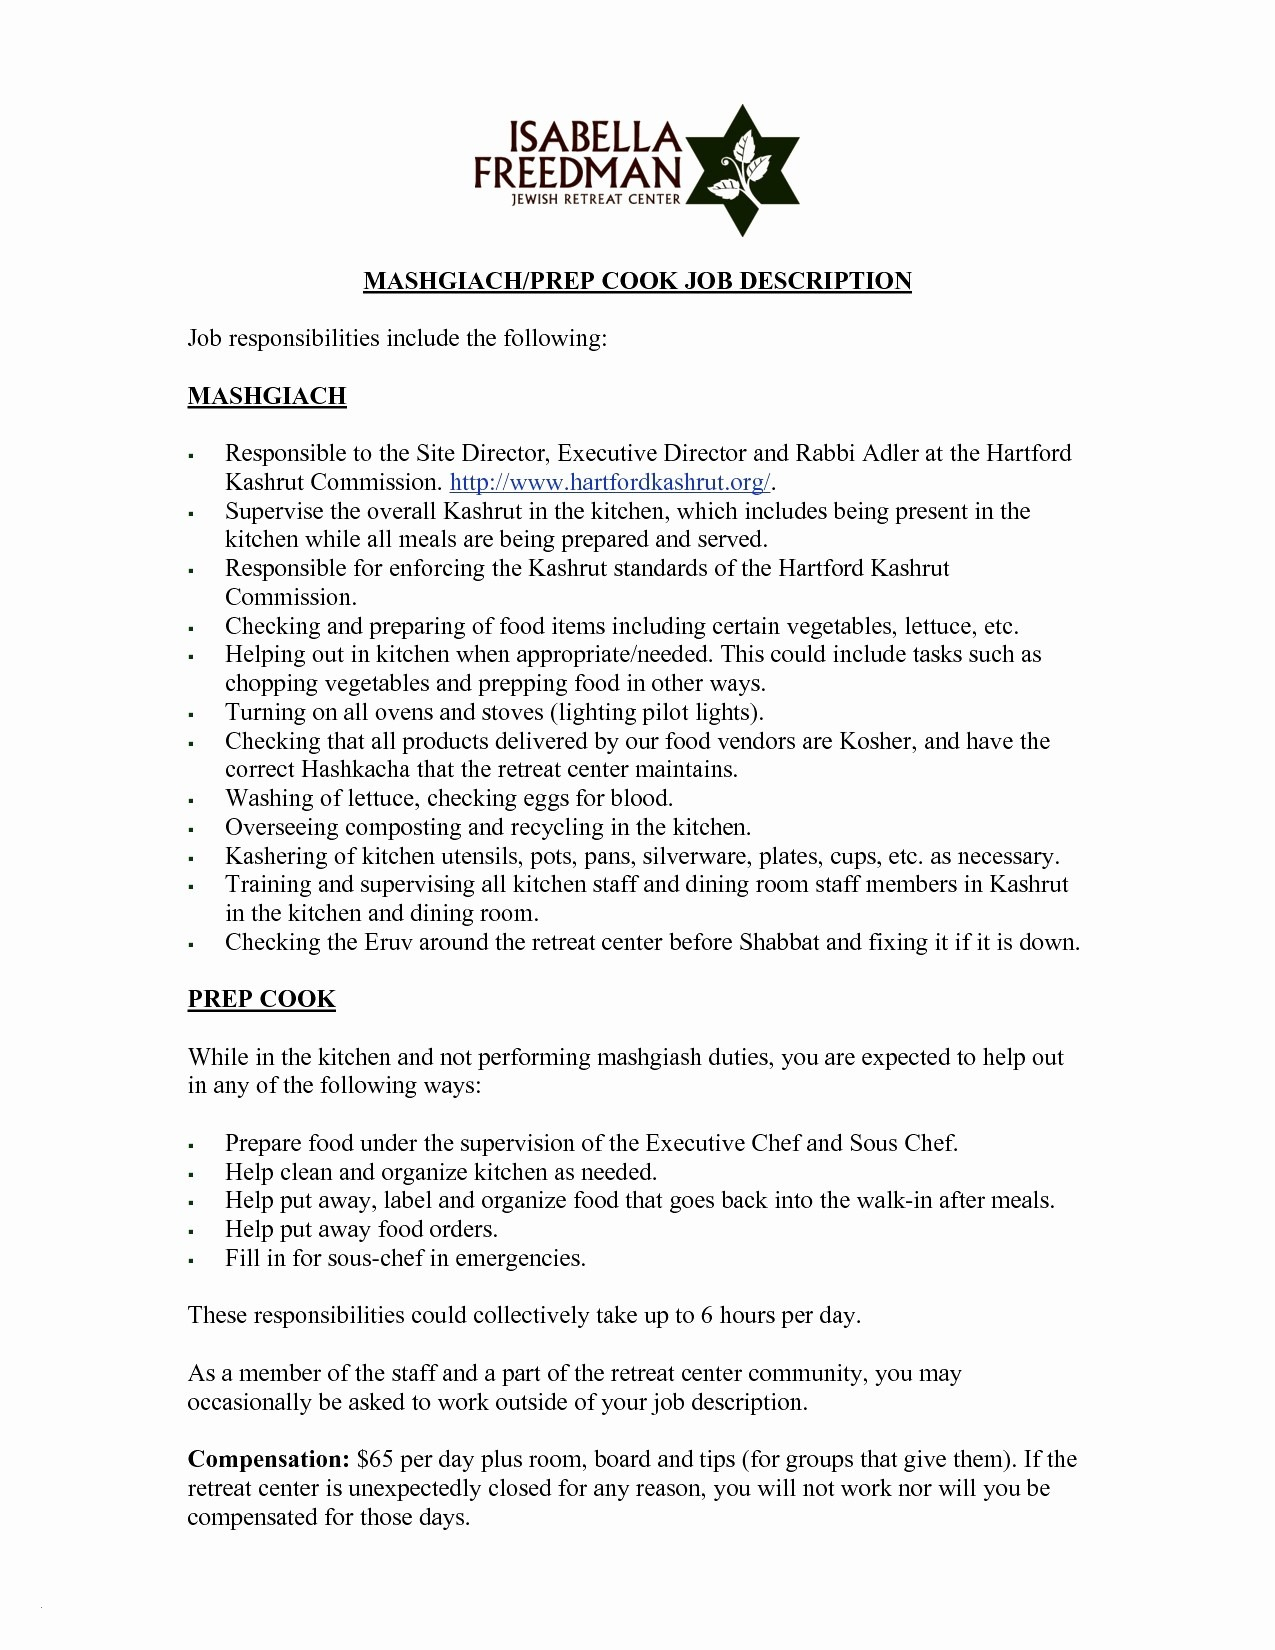 Resume Cover Letter Template for Medical assistant - Sample Medical assistant Resume Fresh Elegant Example Resume